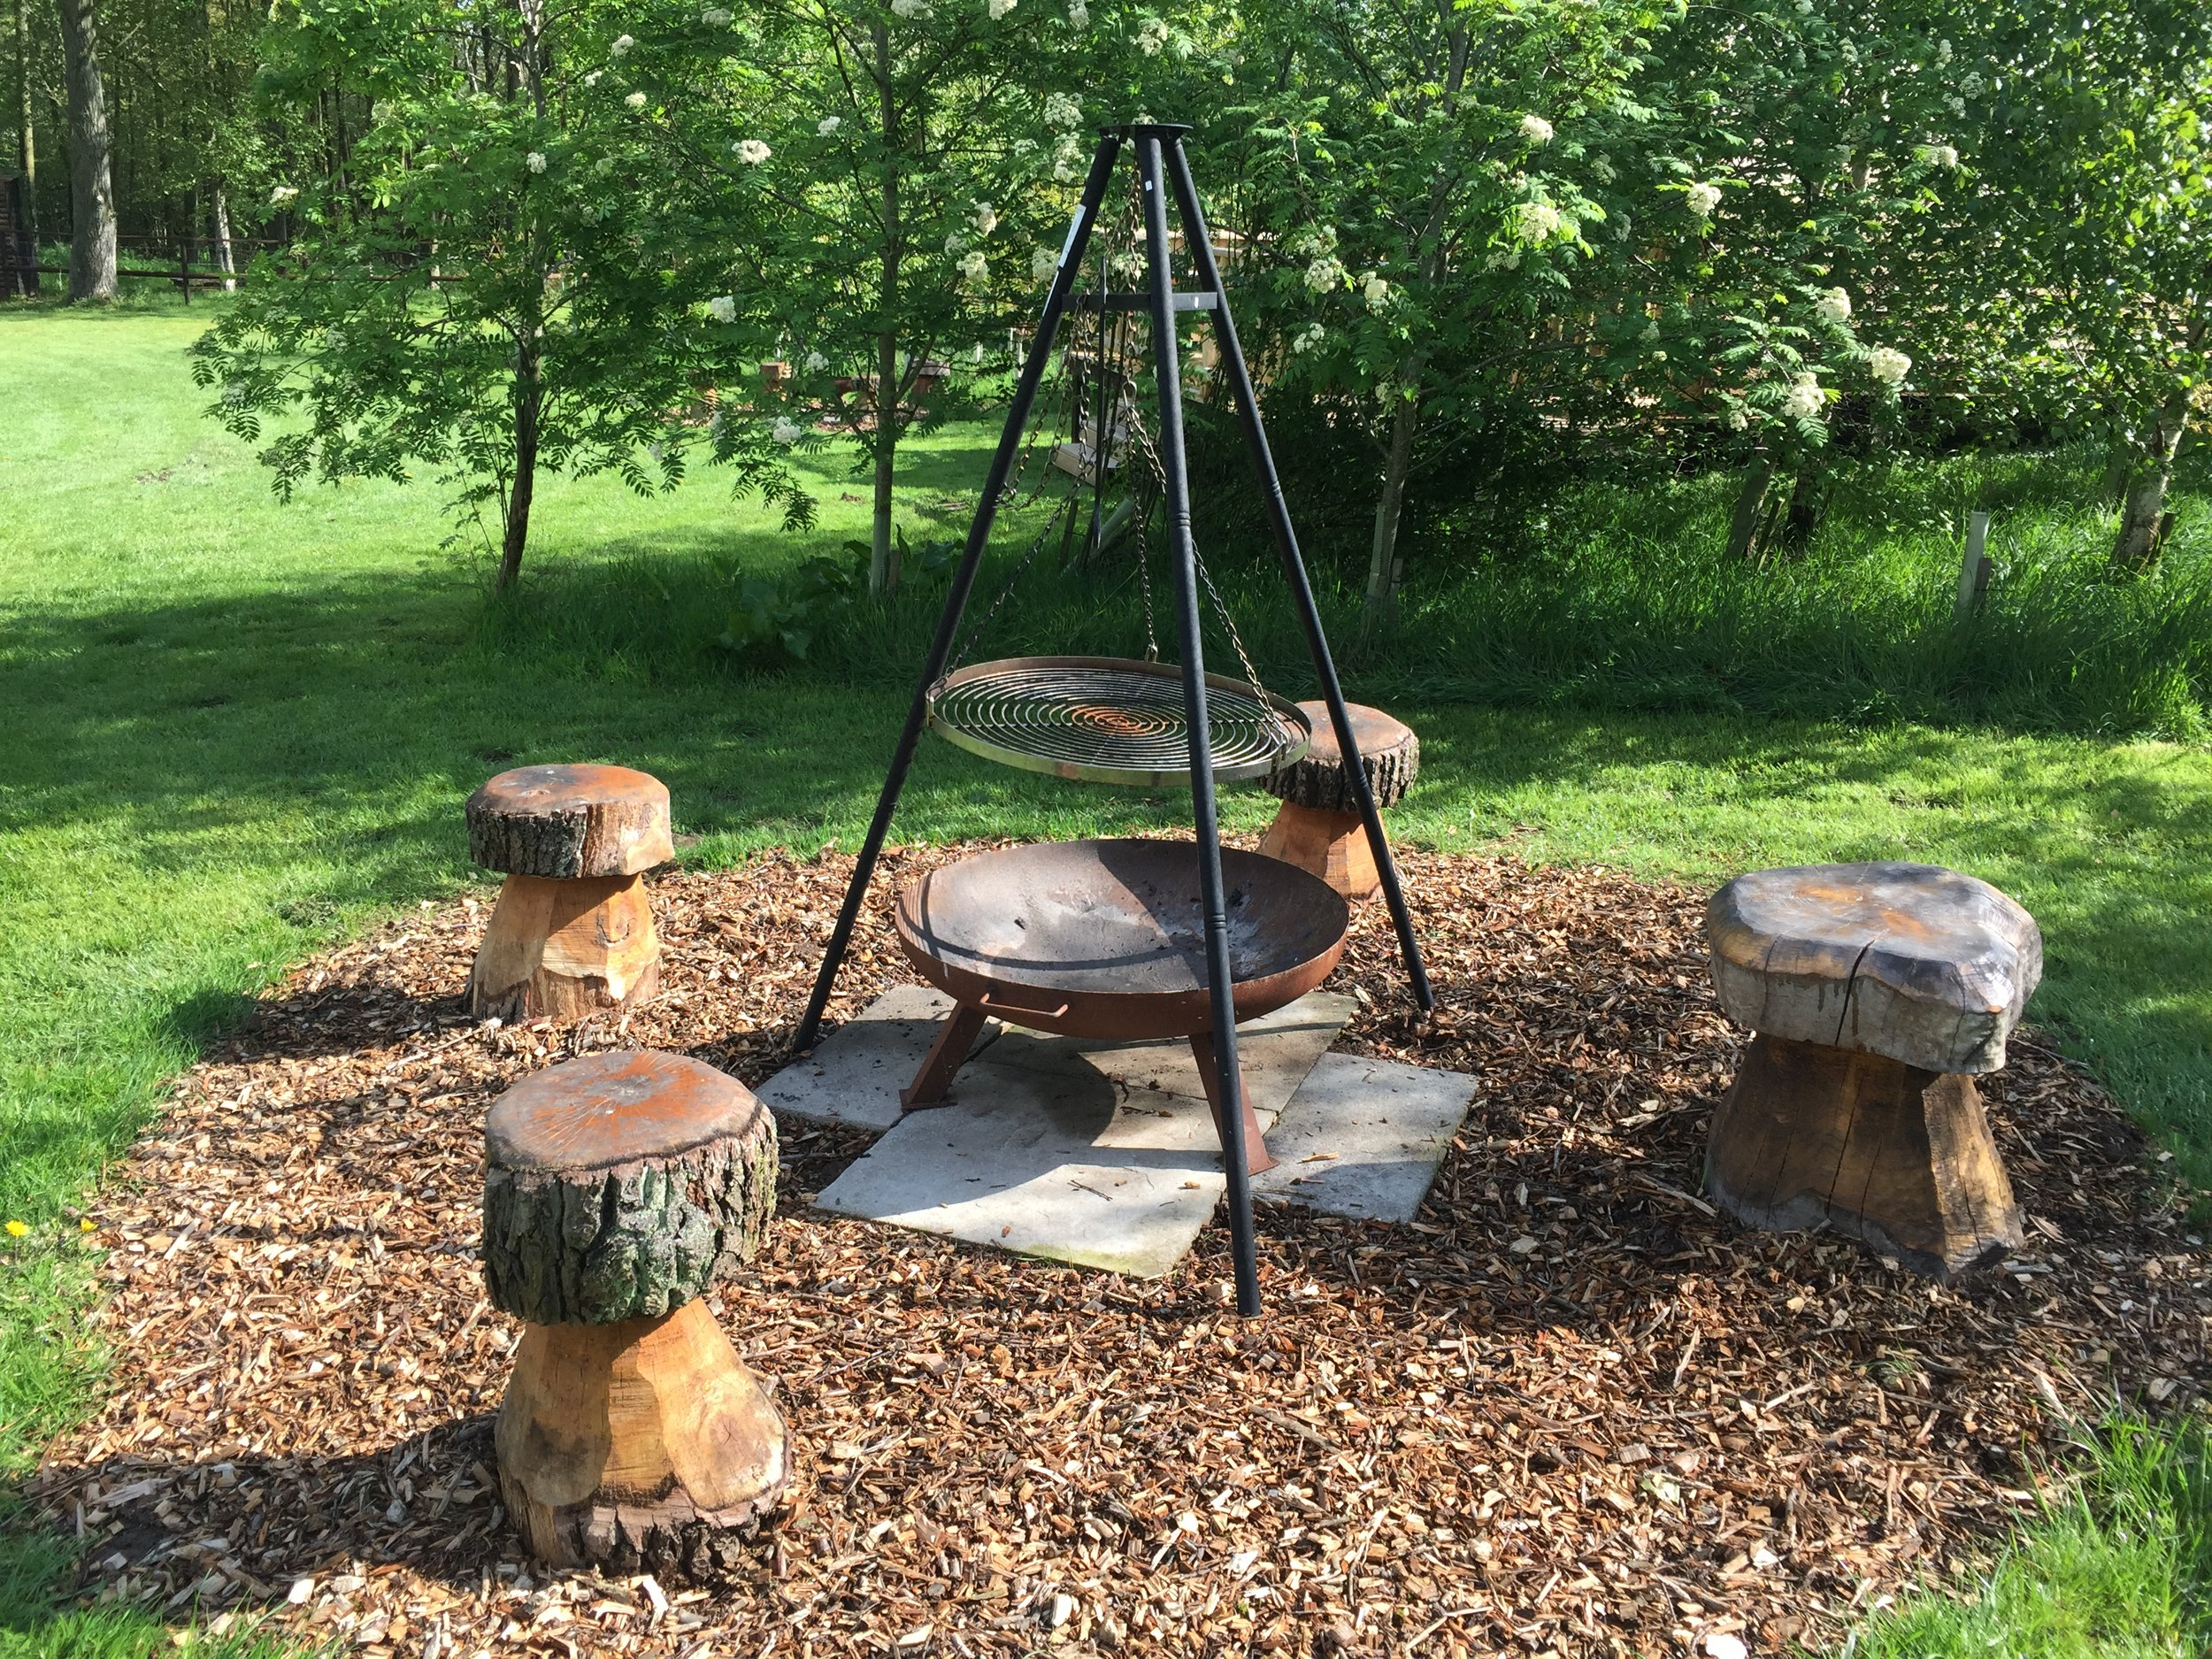 Each cabin has a fire pit - ideal for catching up after a day of exploring!